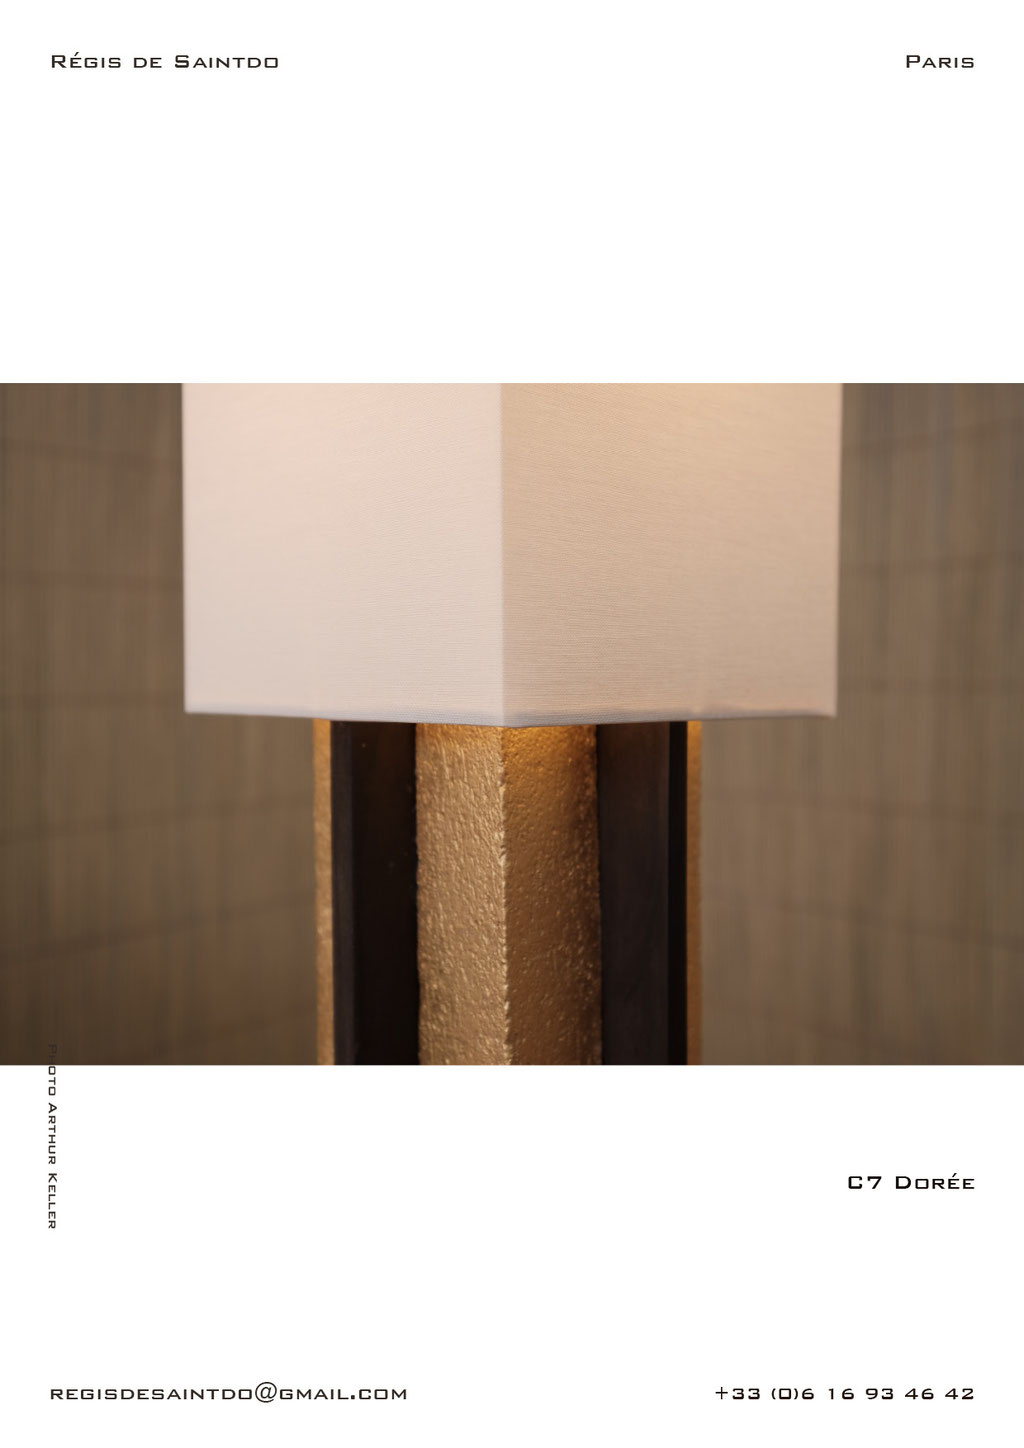 Lampe-C7-céramique-or-brute-brune-polie-faite-main-unique-détail